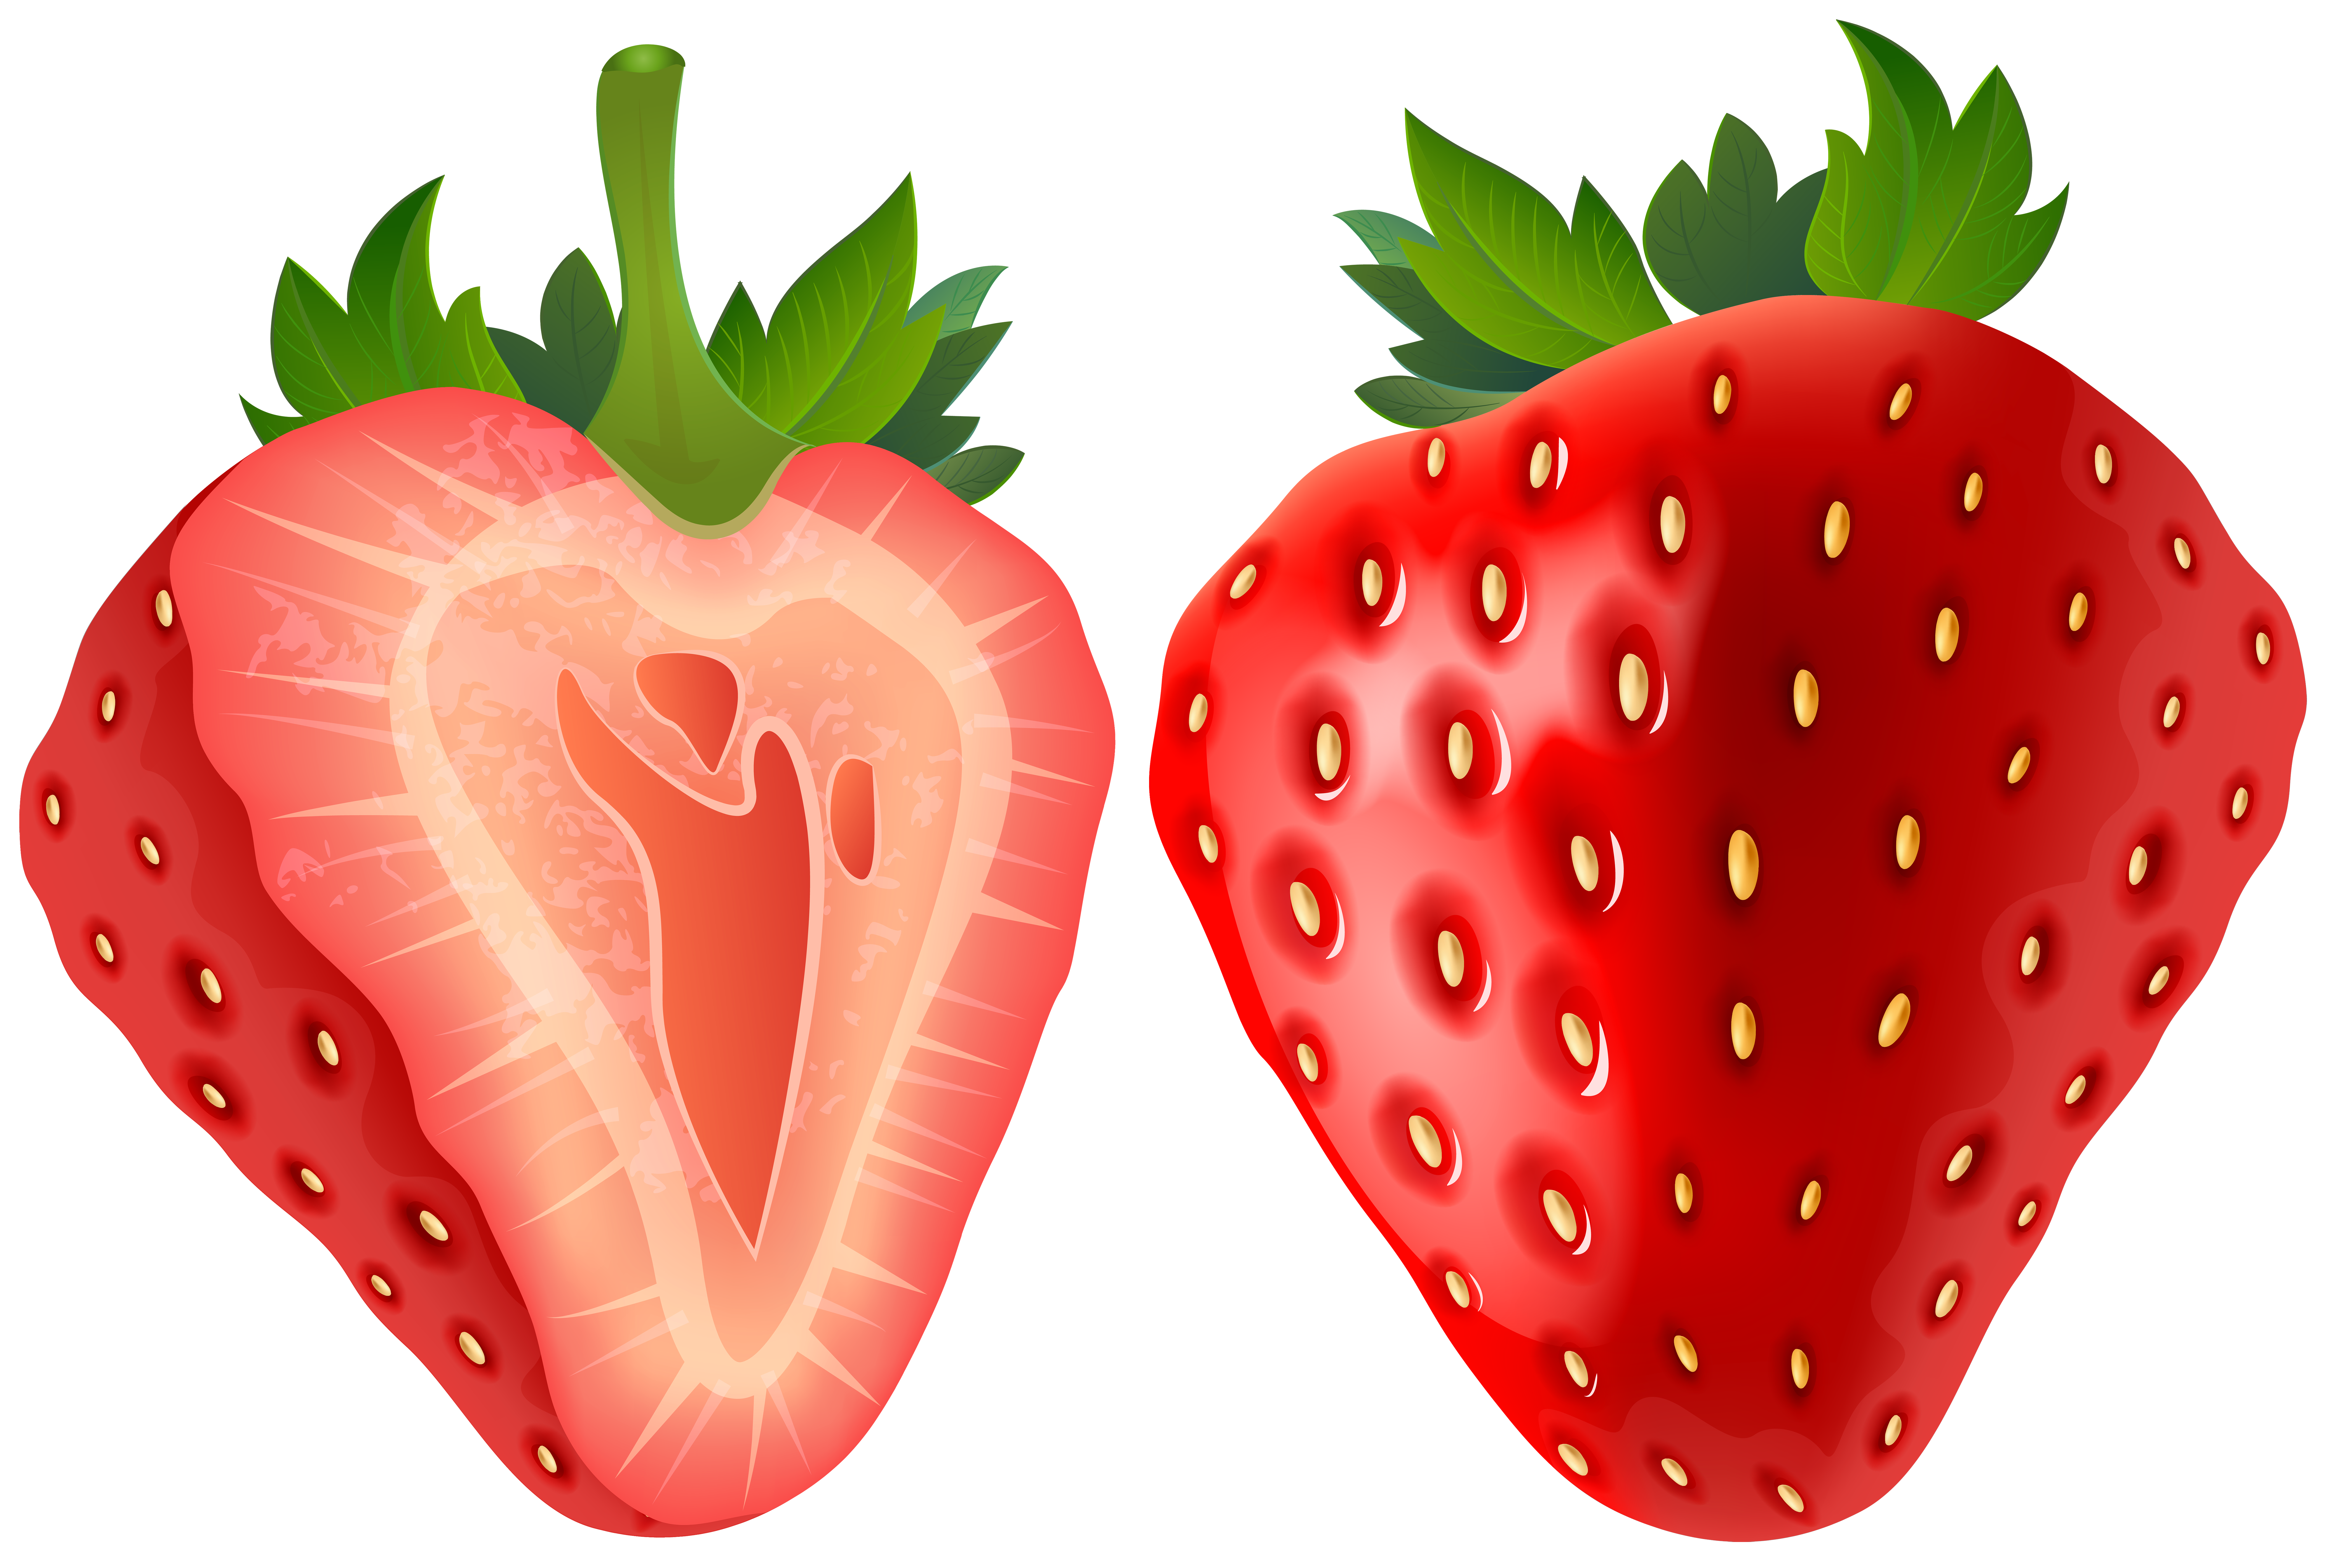 Strawberries clipart png. Strawberry transparent clip art